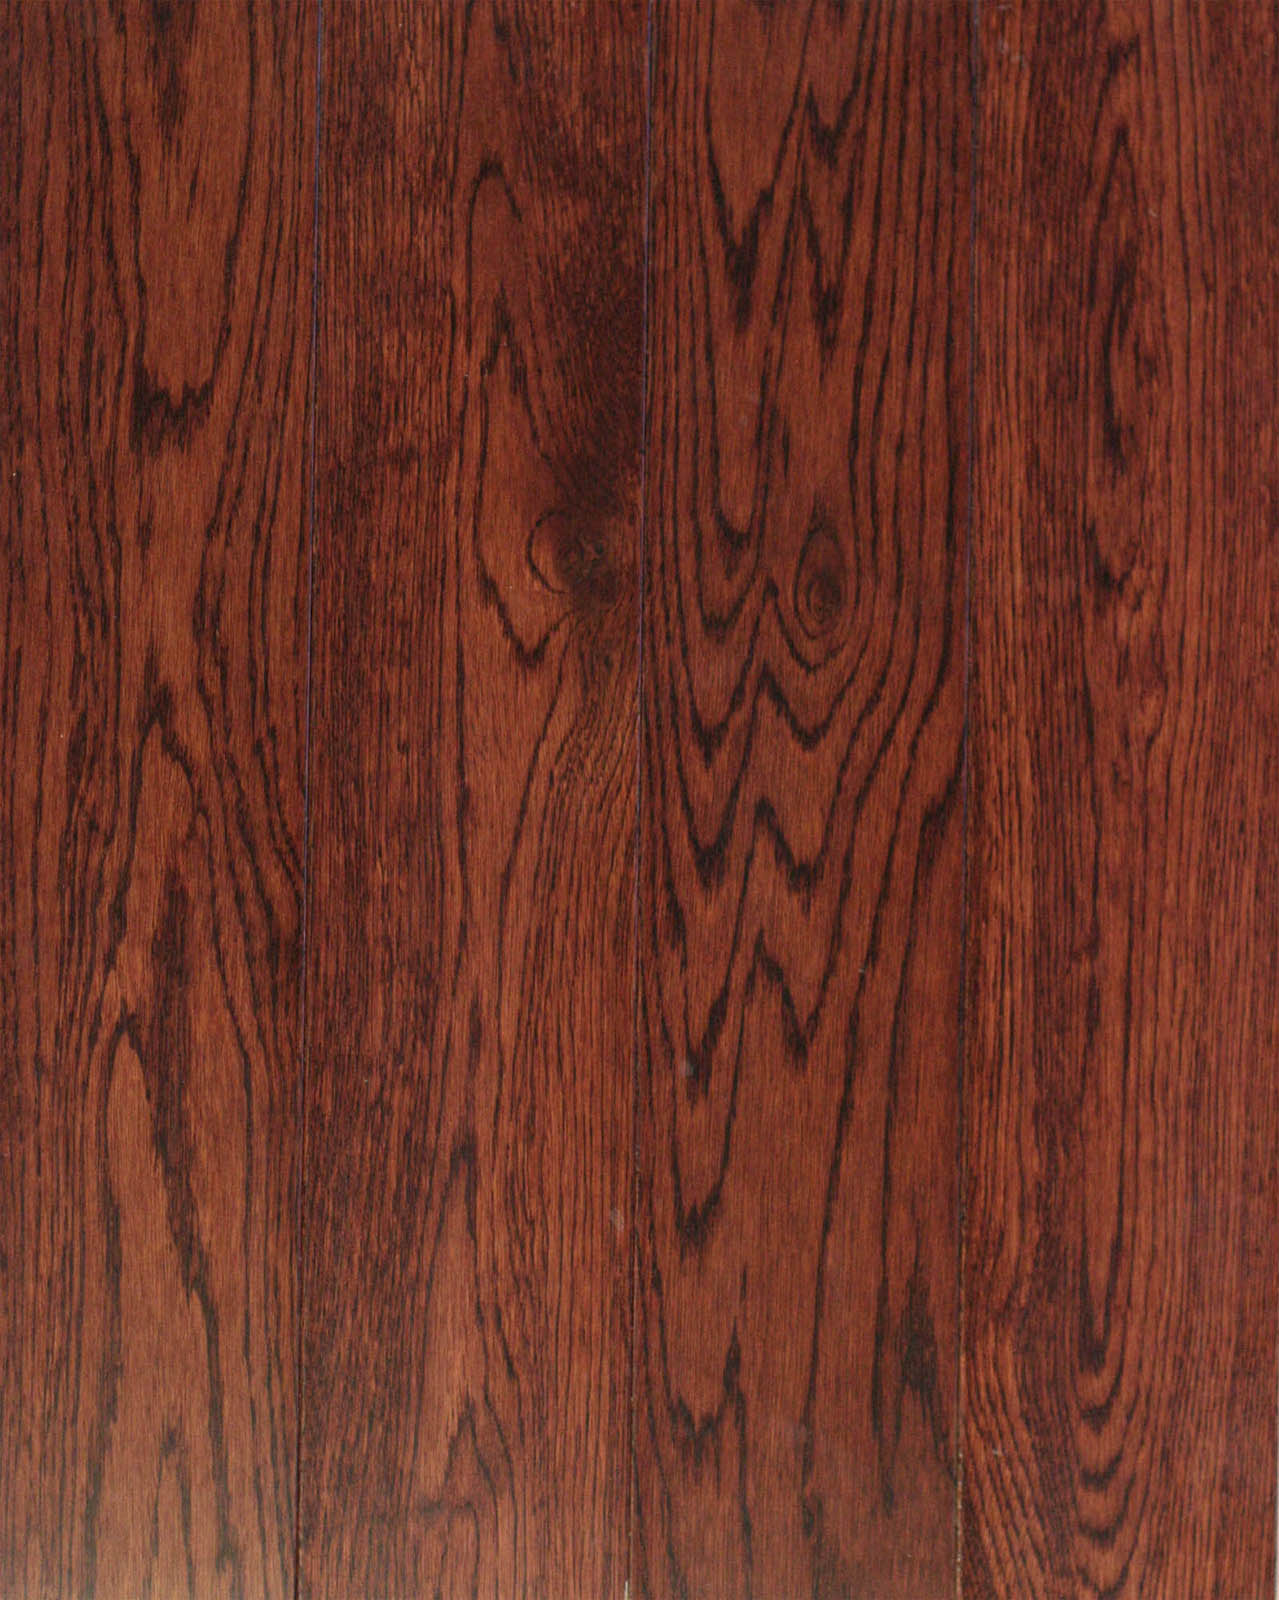 Hickory pecan mahogany stain 3 9 16 wood stains for Mahogany flooring